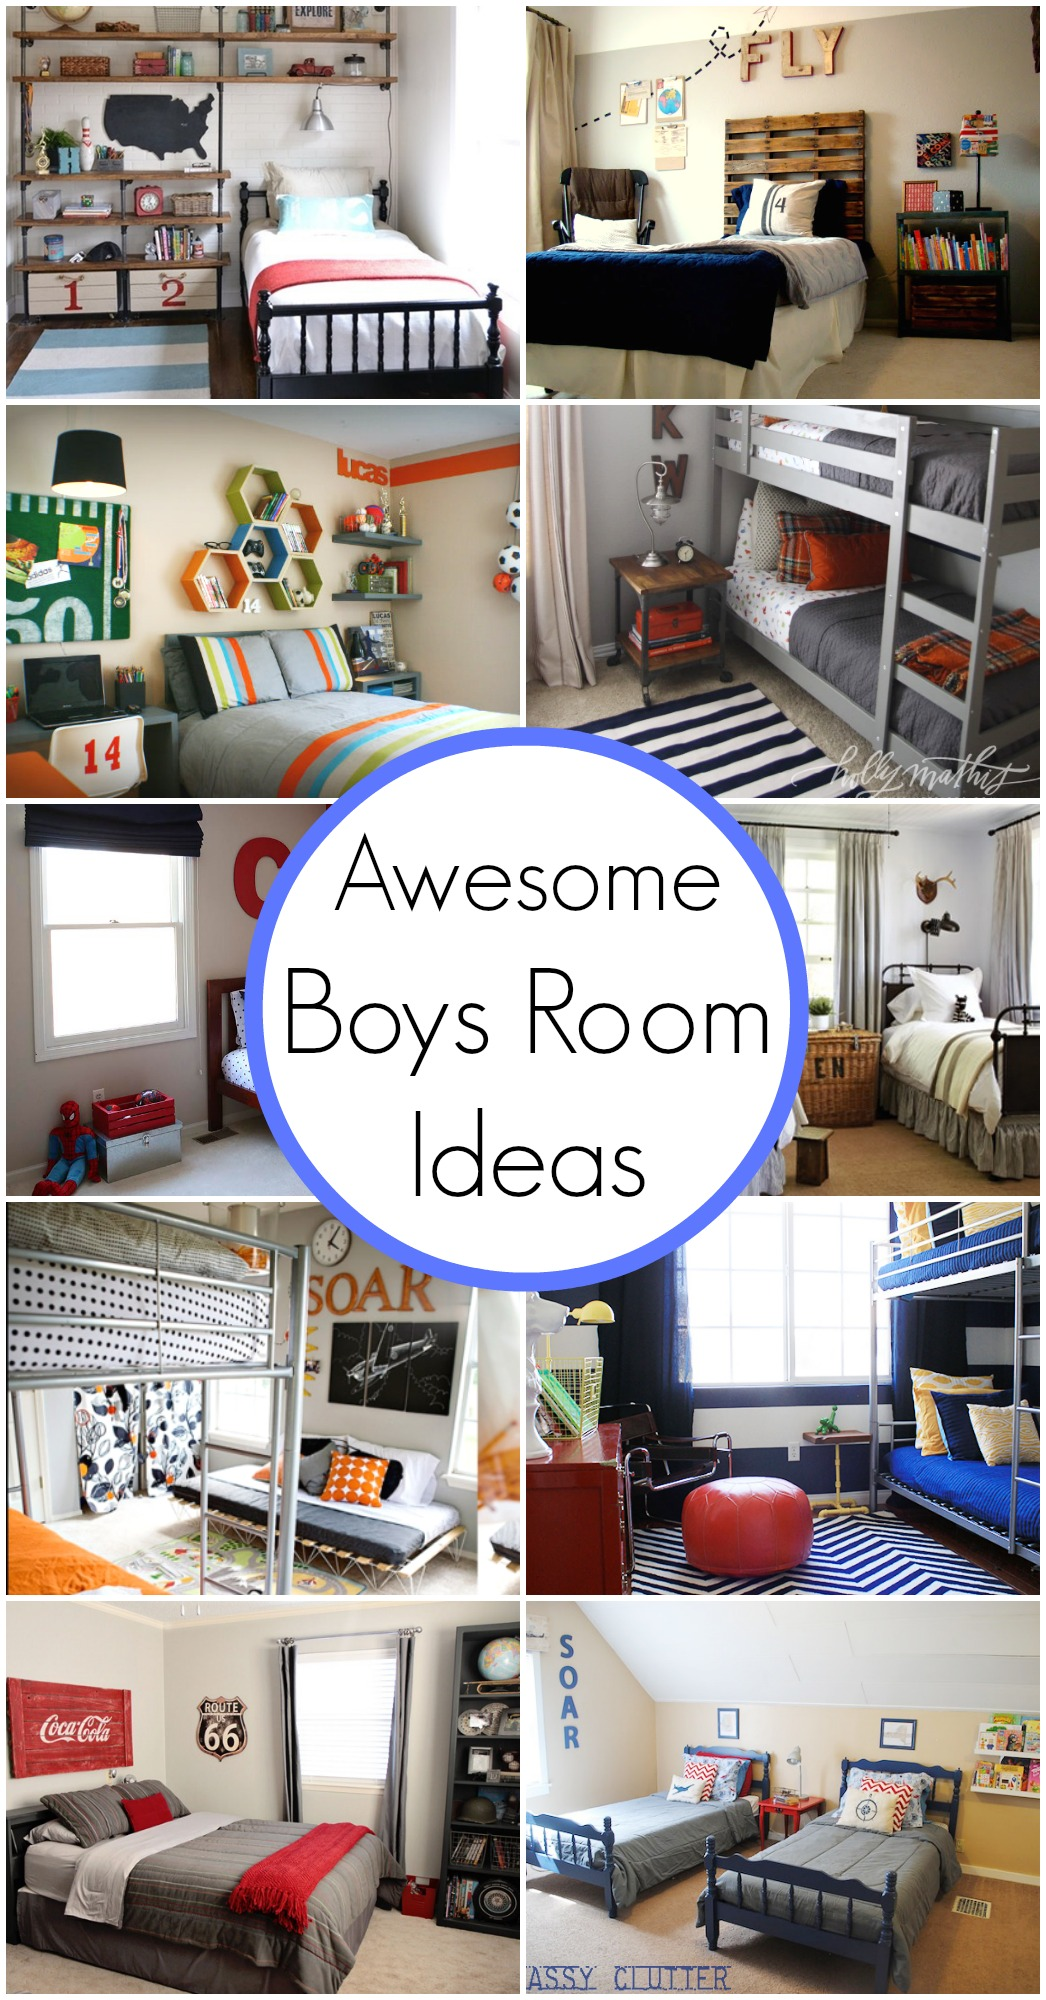 10 Awesome Boy 39 S Bedroom Ideas Classy Clutter